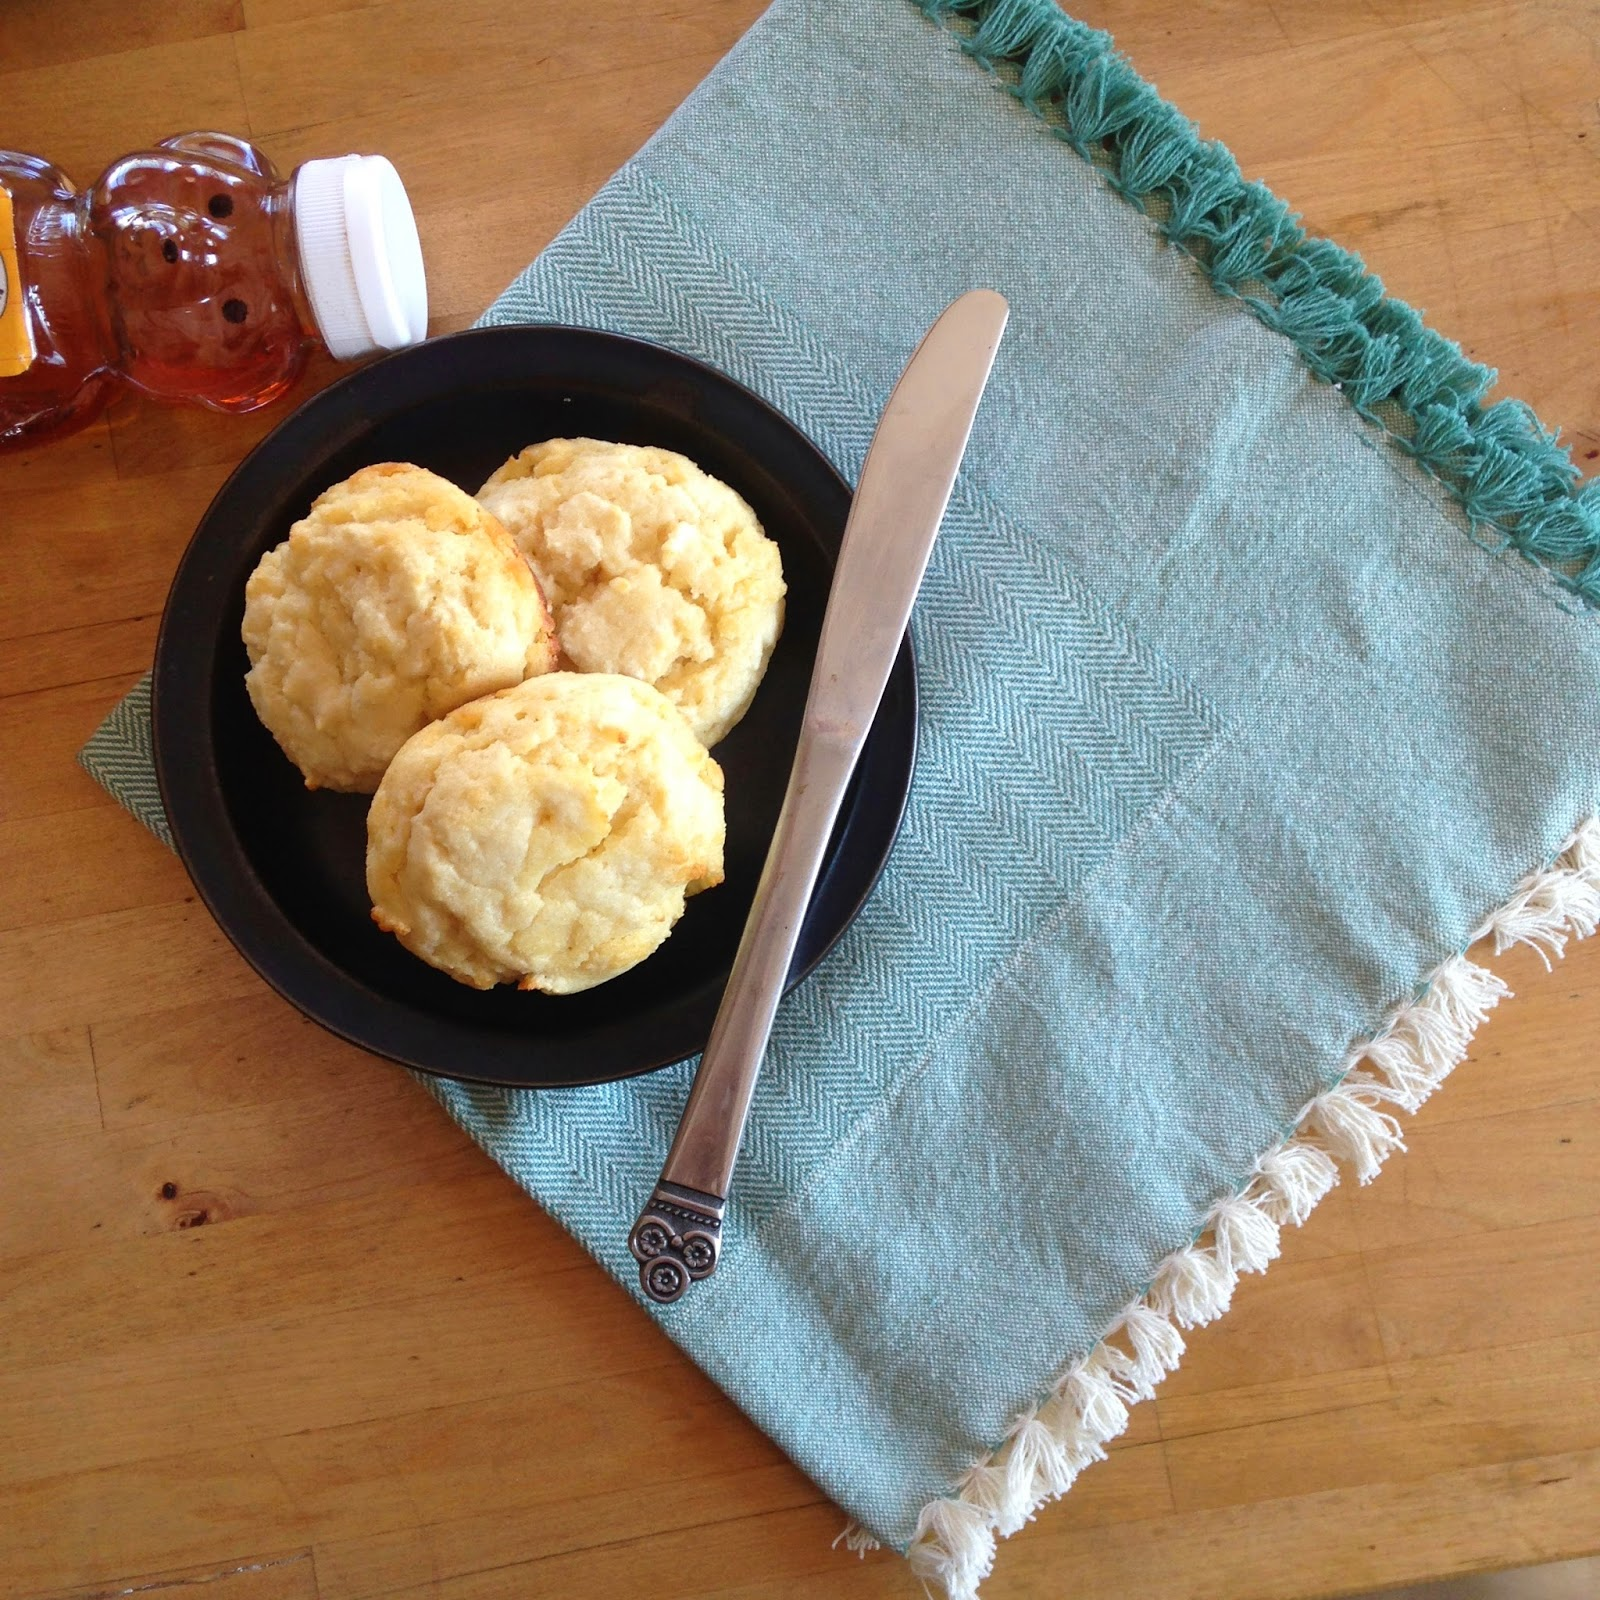 Simply Healthy Living's biscuit recipe.